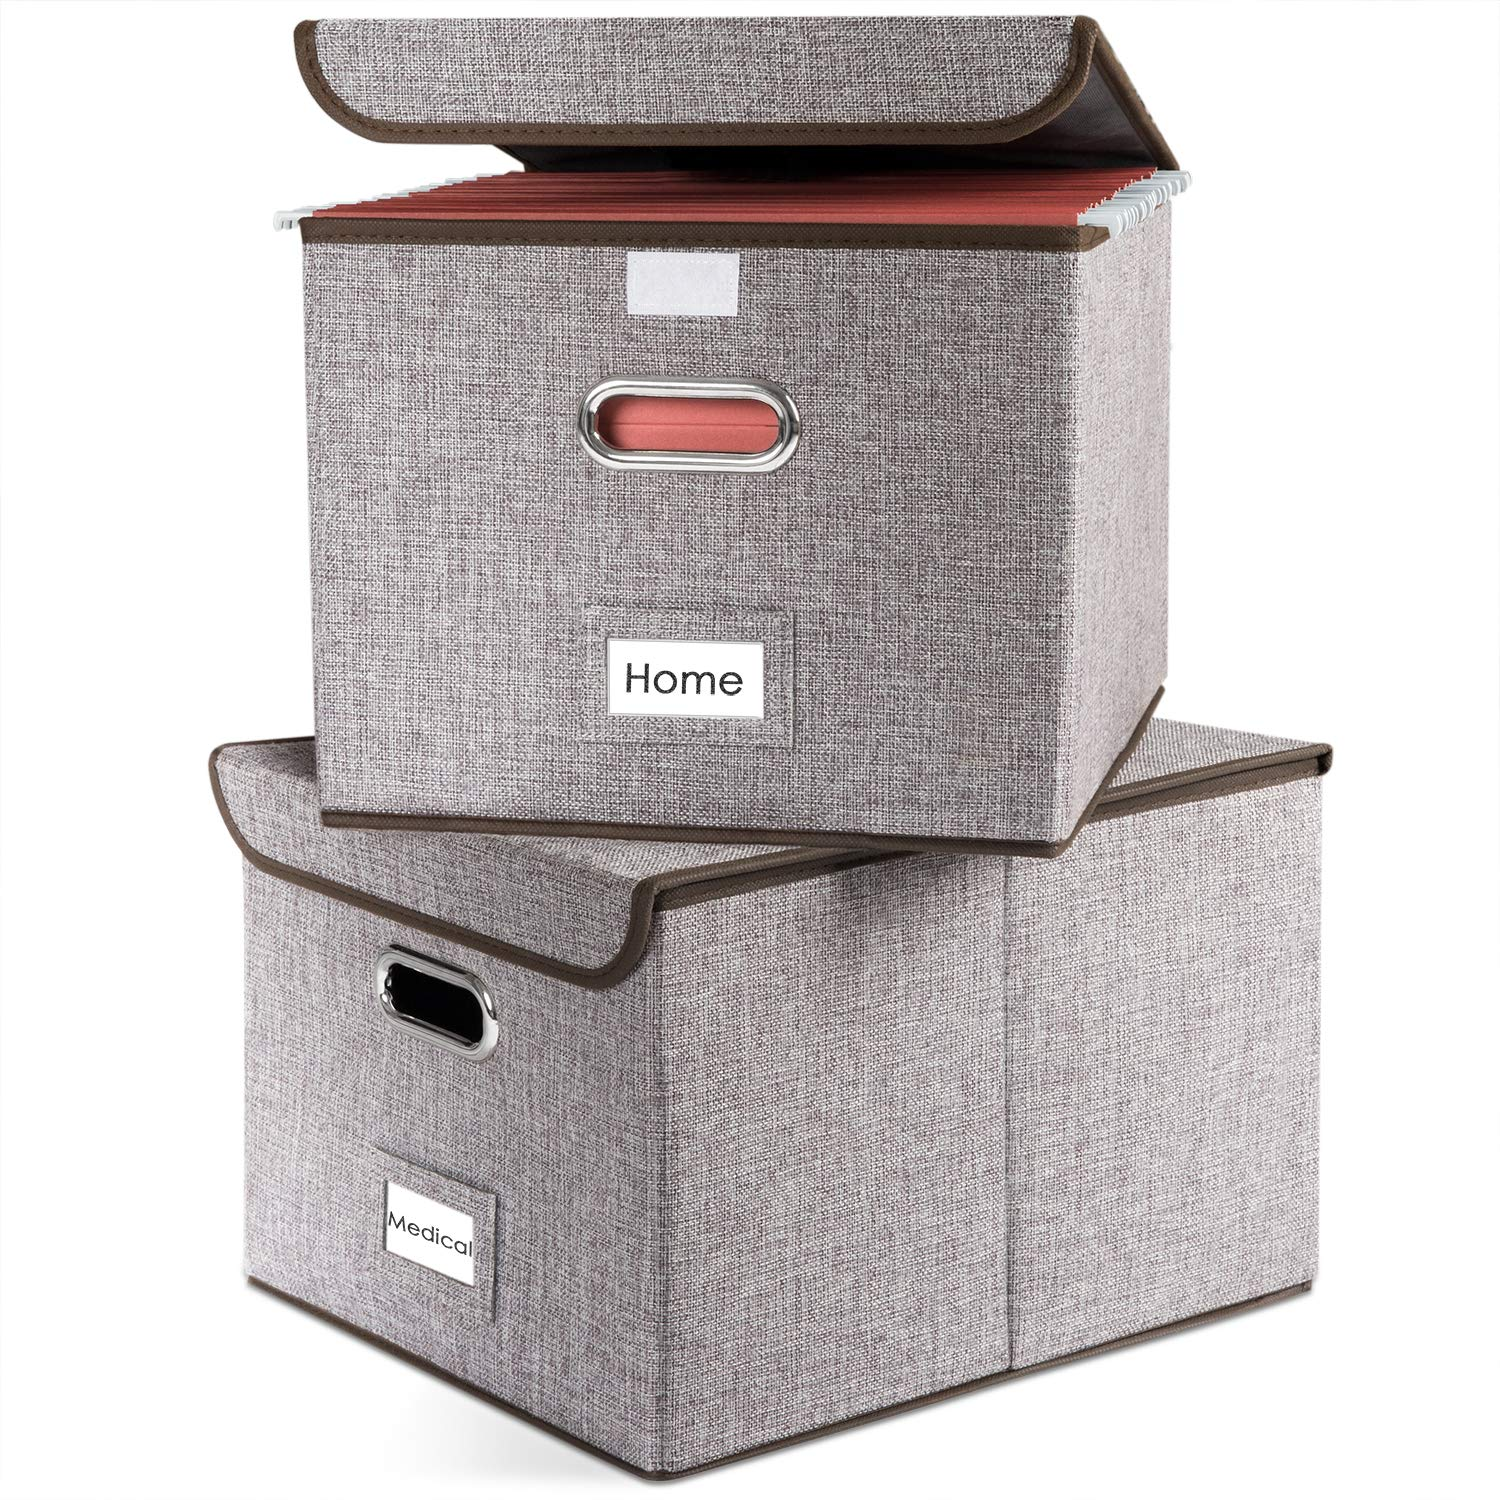 Prandom File Boxes Set of 2 Collapsible Decorative Linen Filing Storage Organizer Hanging File Folders with Lids Office Cabnet Letter Size Important Document Gray by Prandom